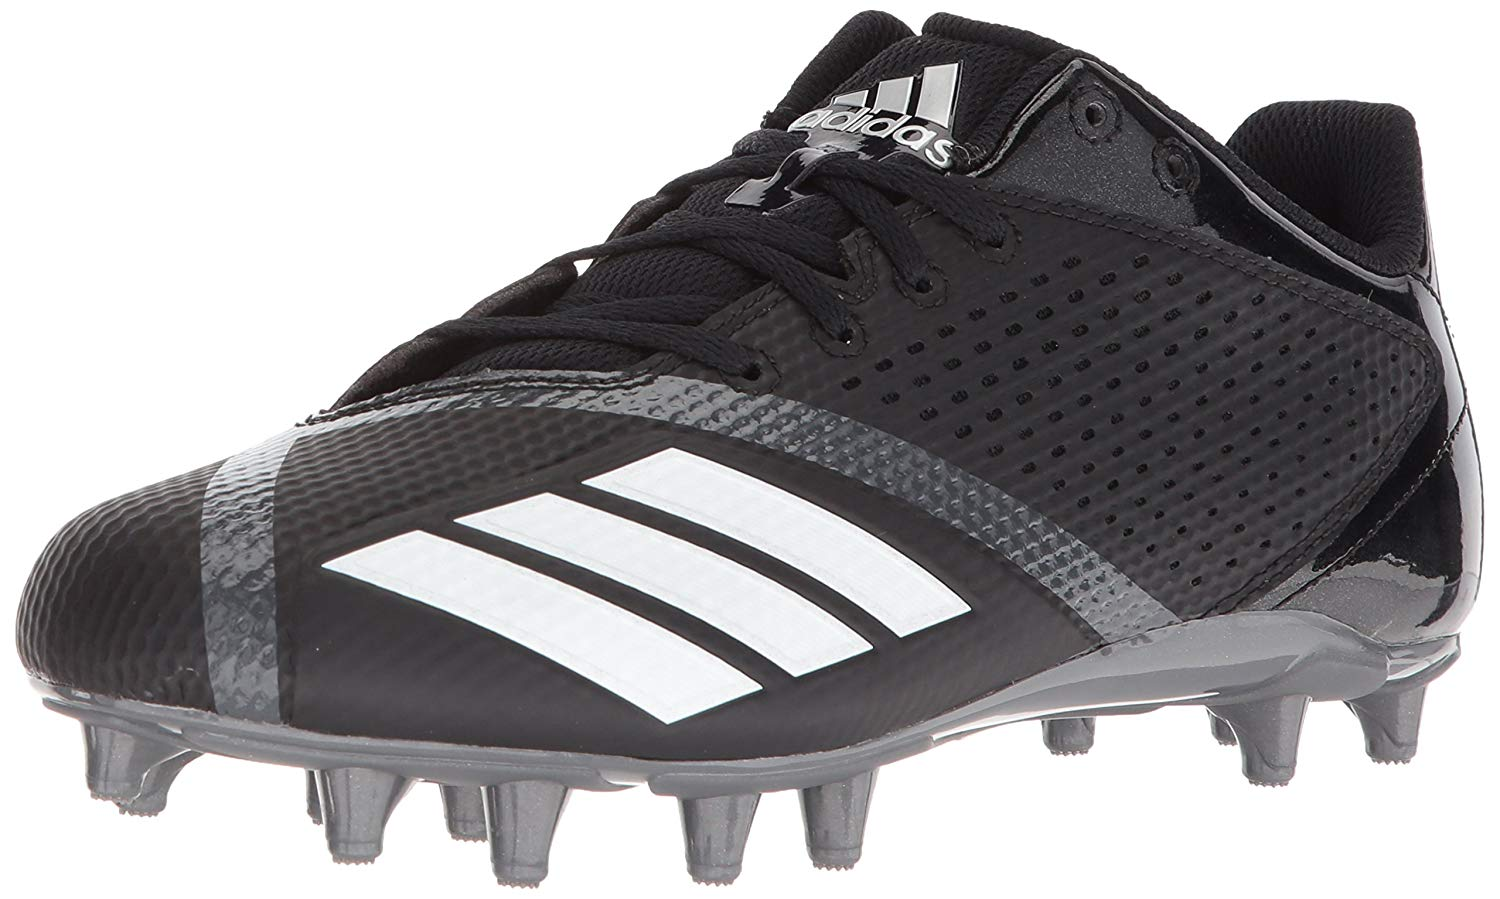 separation shoes 95266 b0628 Adidas Mens 5-Star Low Top Lace Up Baseball Shoes